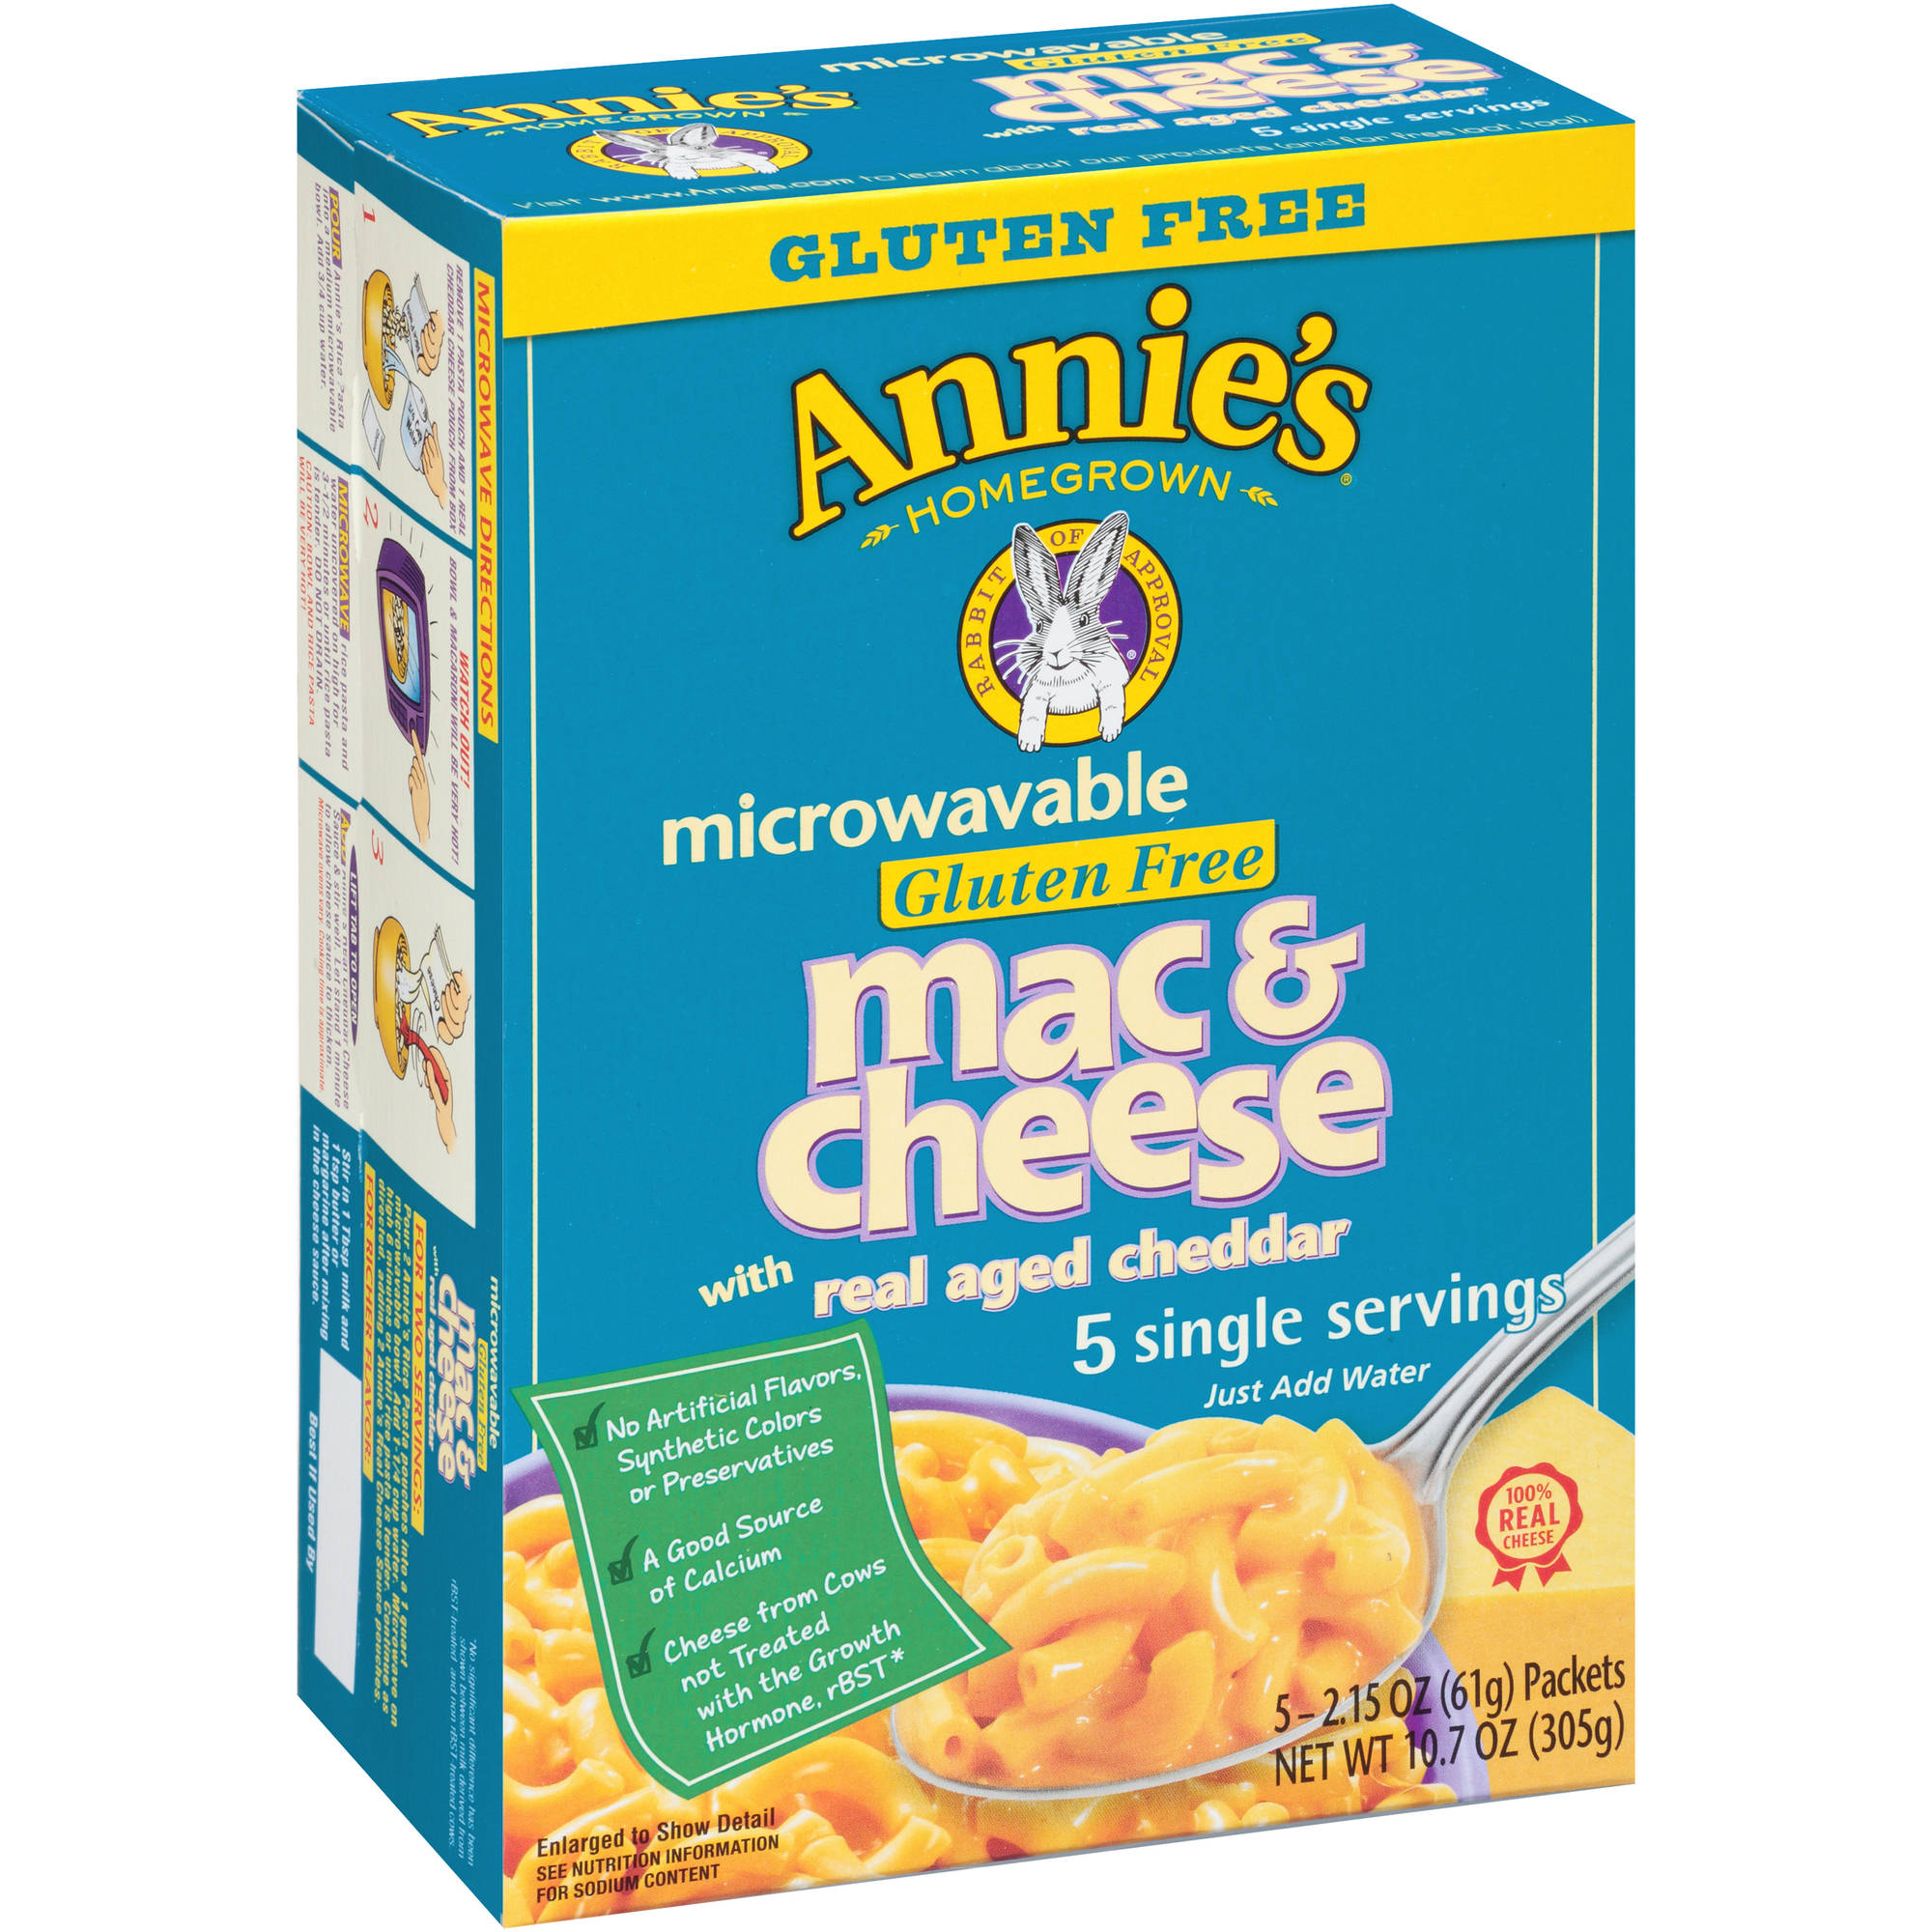 Annie's Homegrown Microwavable Gluten Free Mac & Cheese with Real Aged Cheddar, 2.15 oz, 5 count